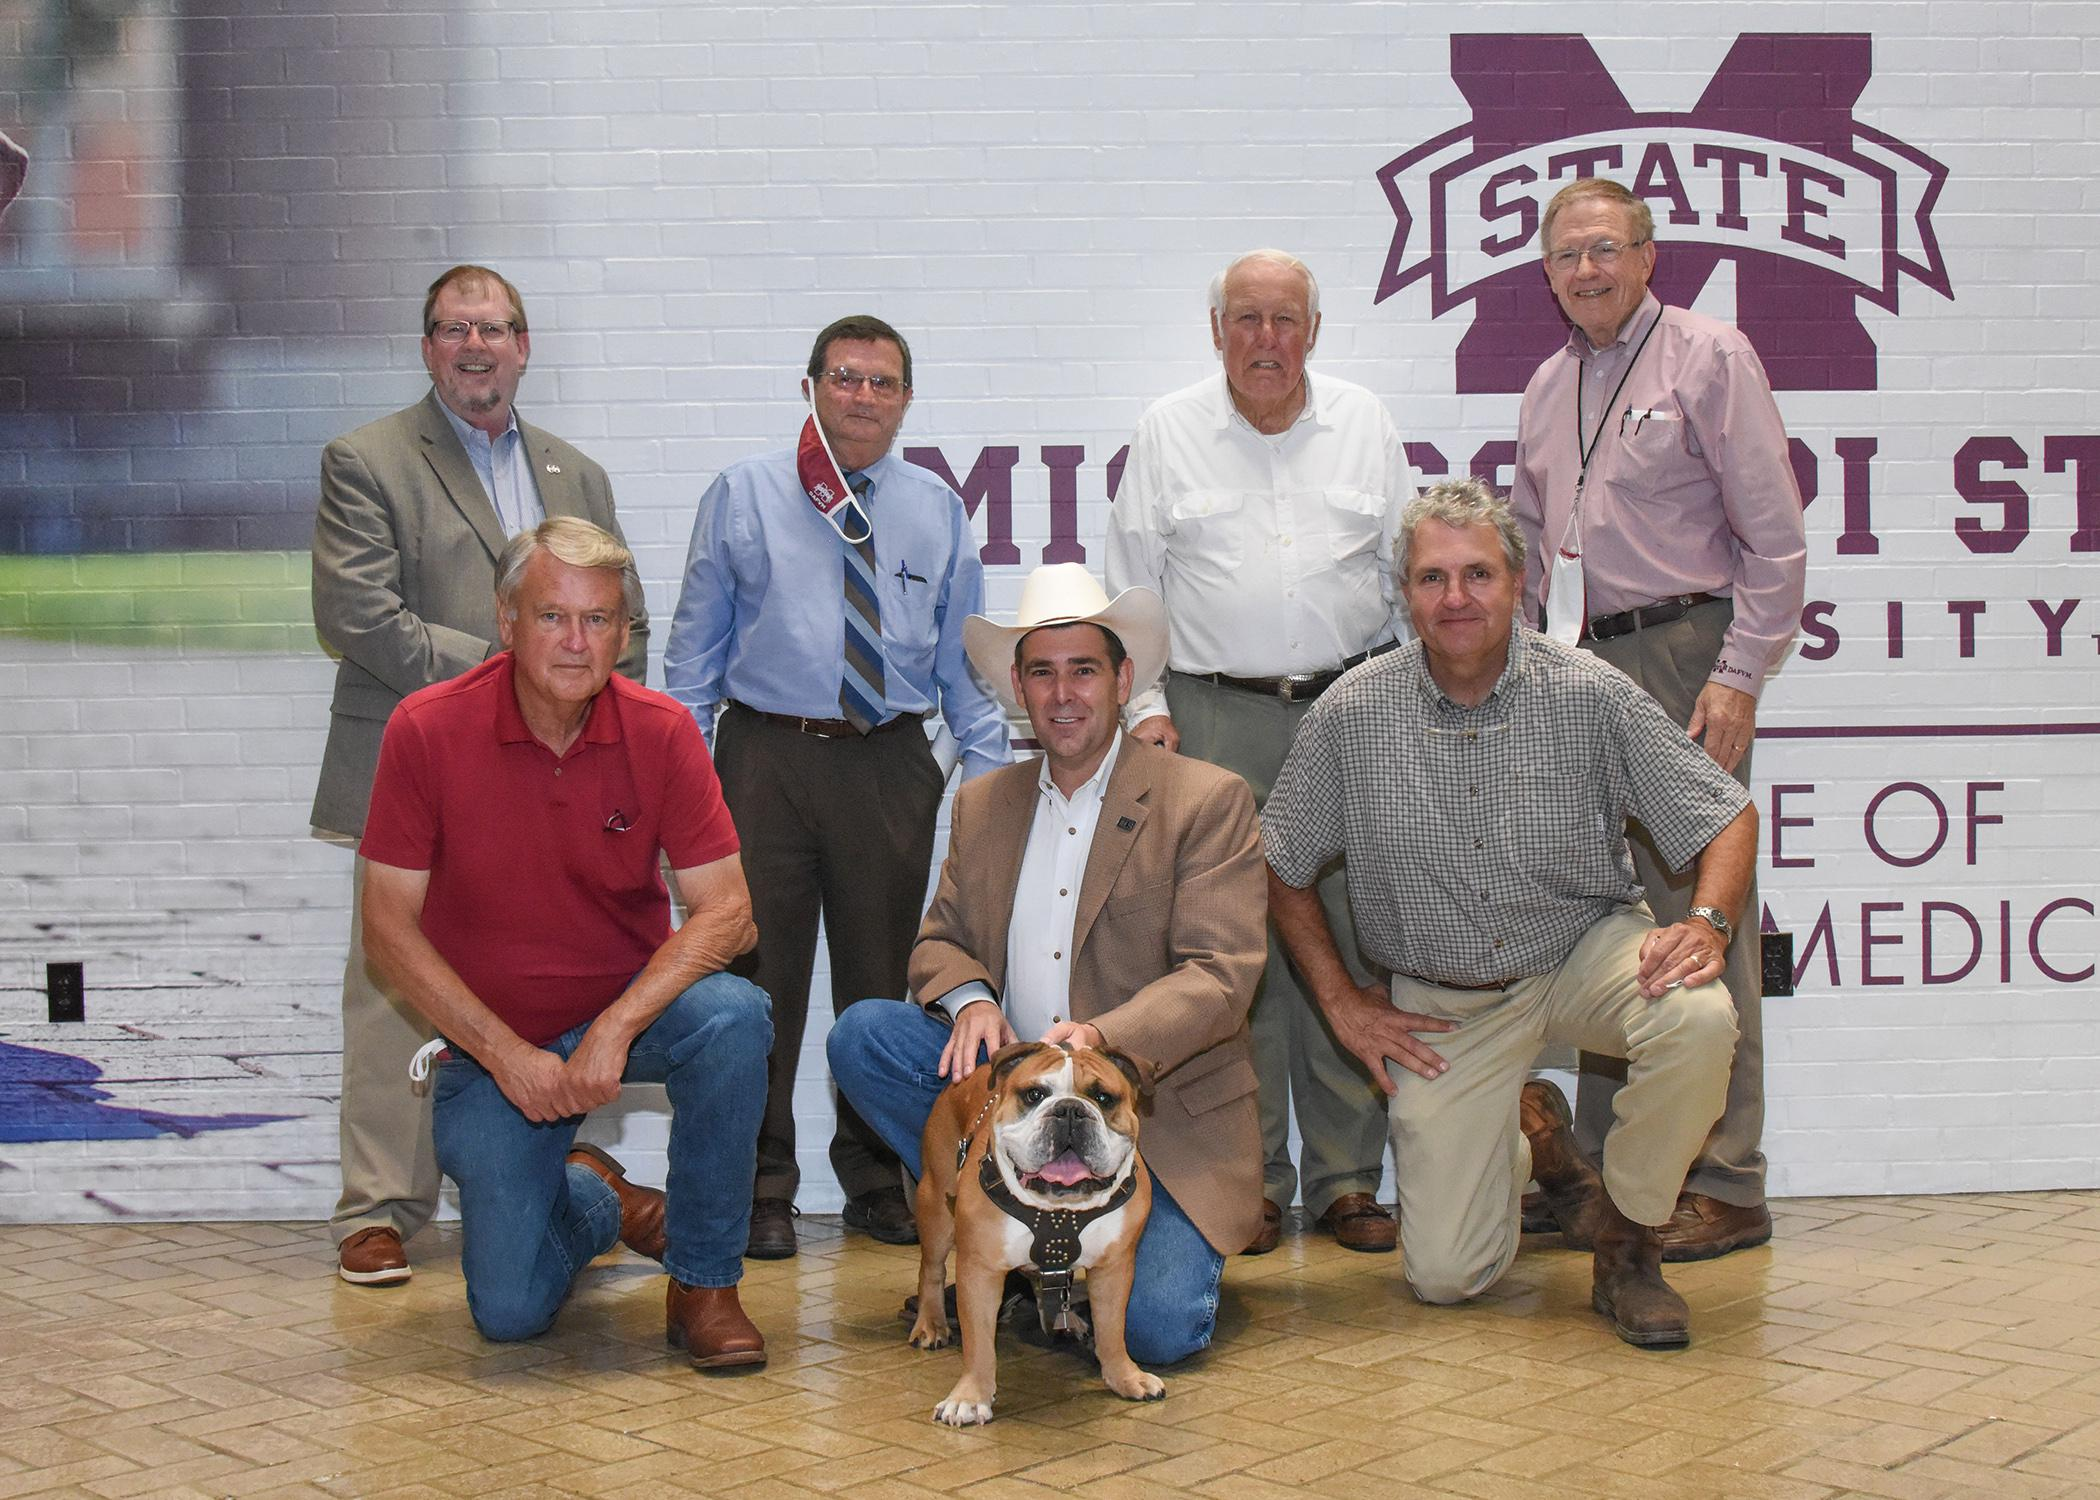 Seven men stand or kneel indoors in two rows, holding a bulldog in the center of the group.